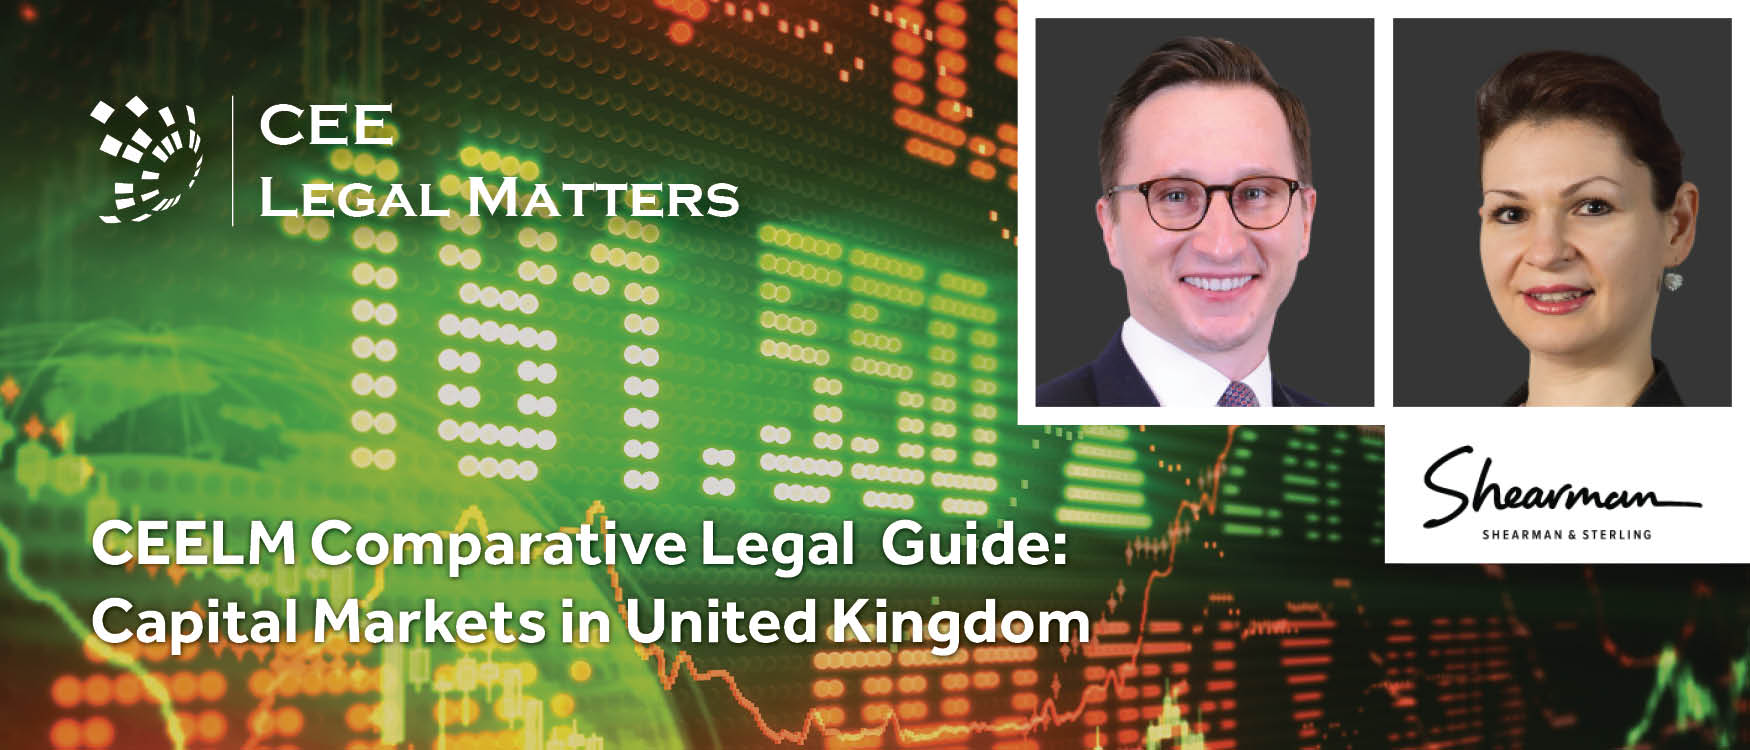 Capital Markets in the United Kingdom